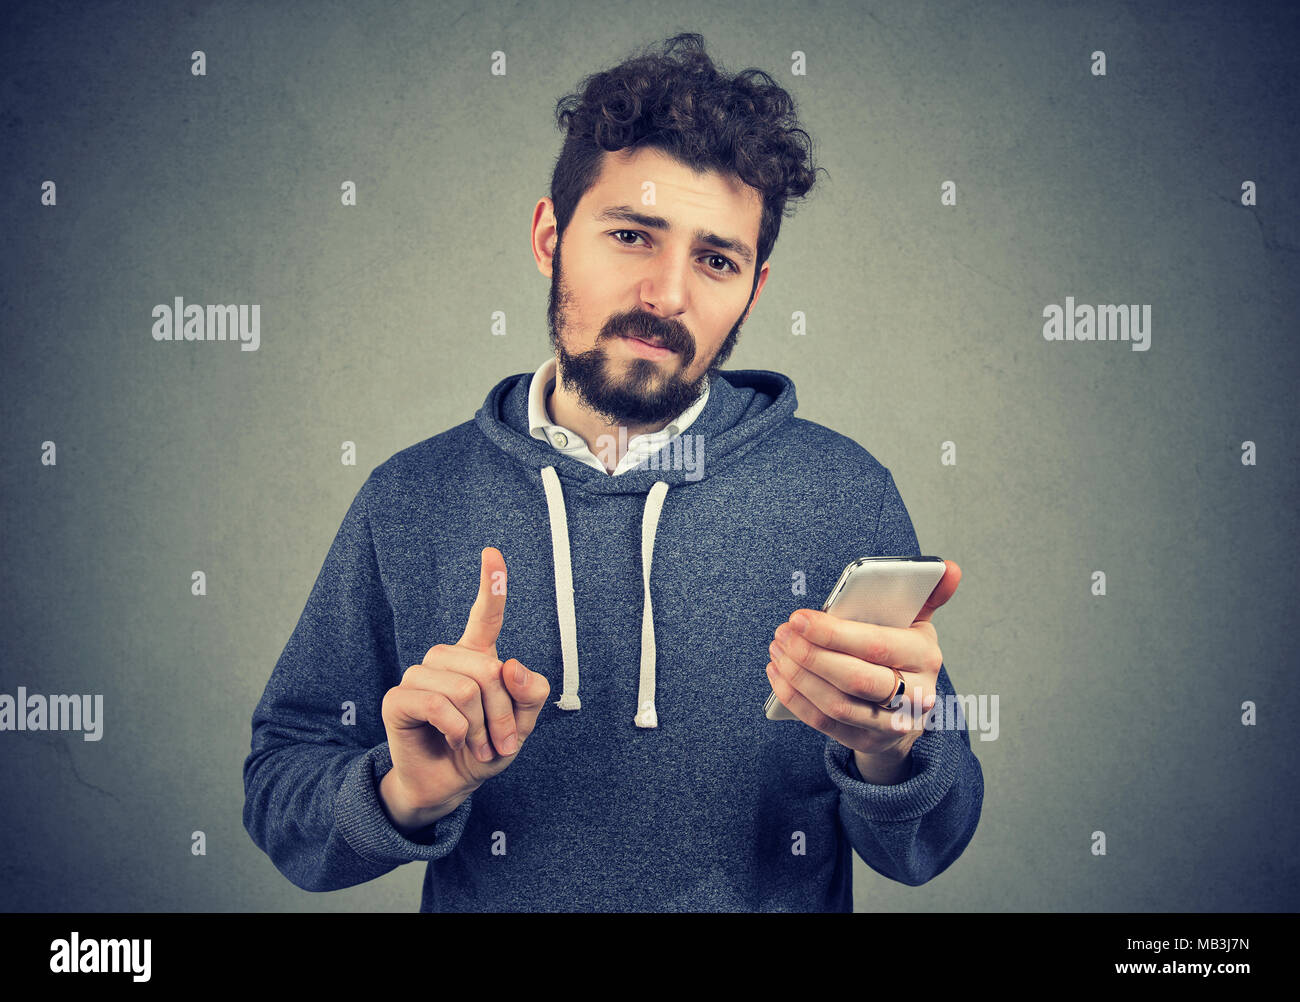 Young man with smartphone. Handsome guy holding cell phone showing no, don't, attention with finger hand gesture. Blocking forbidden adult contents co - Stock Image